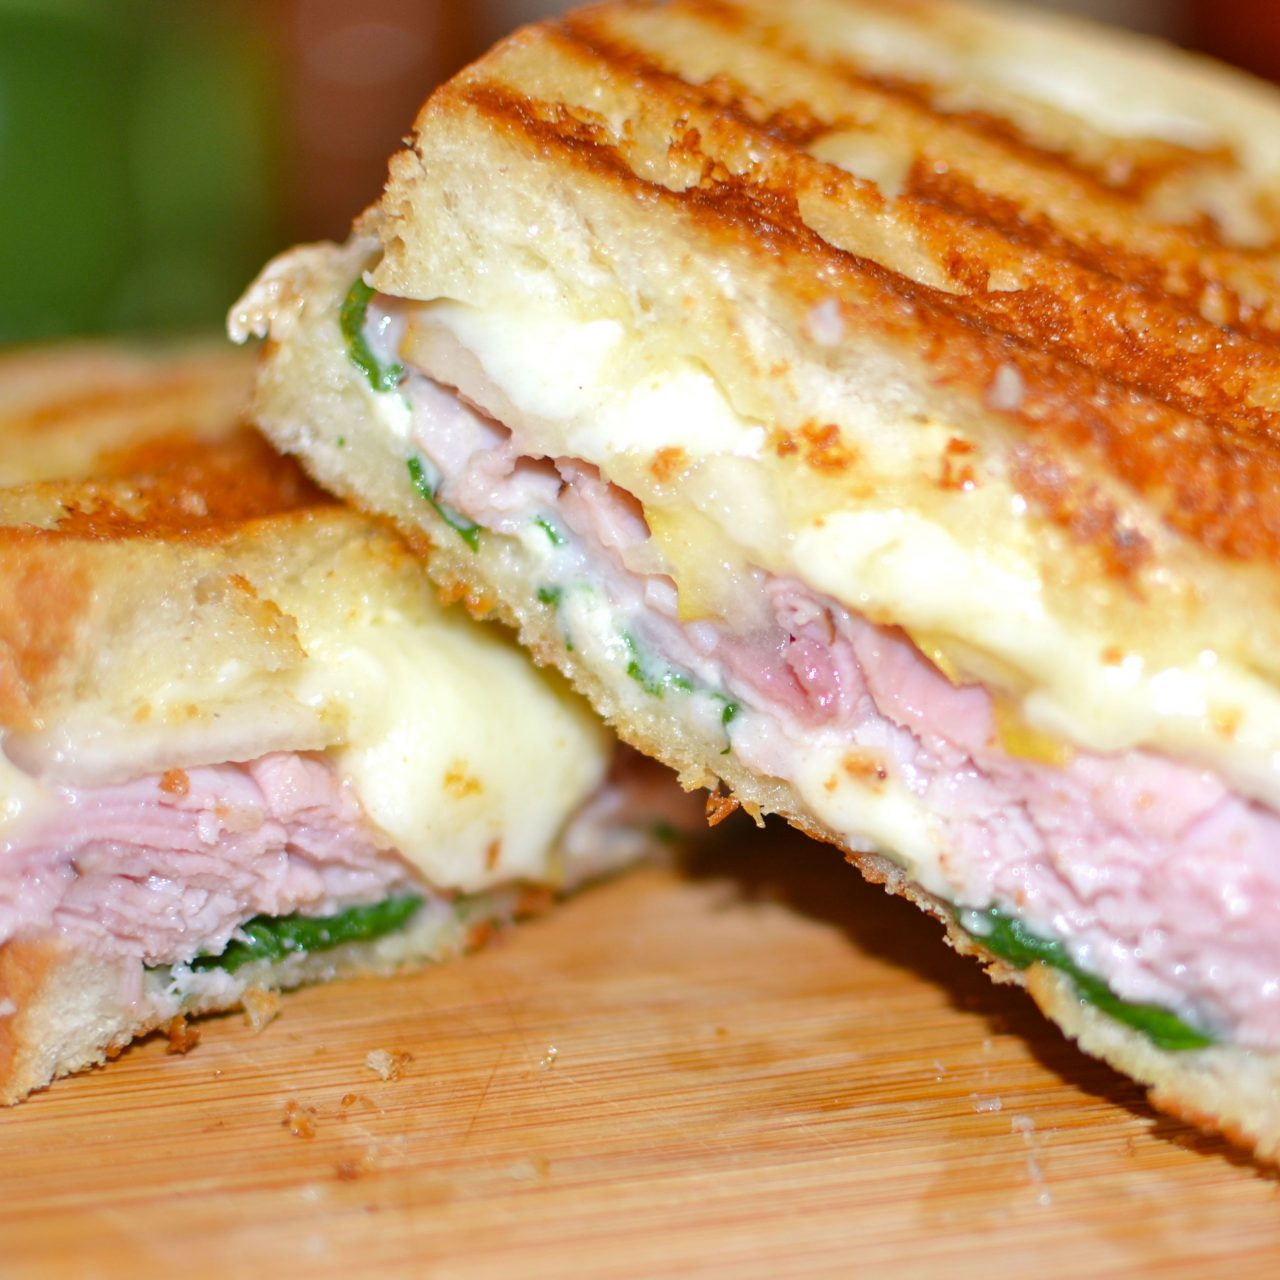 Ham & Cheese Panini with Pears & Spinach